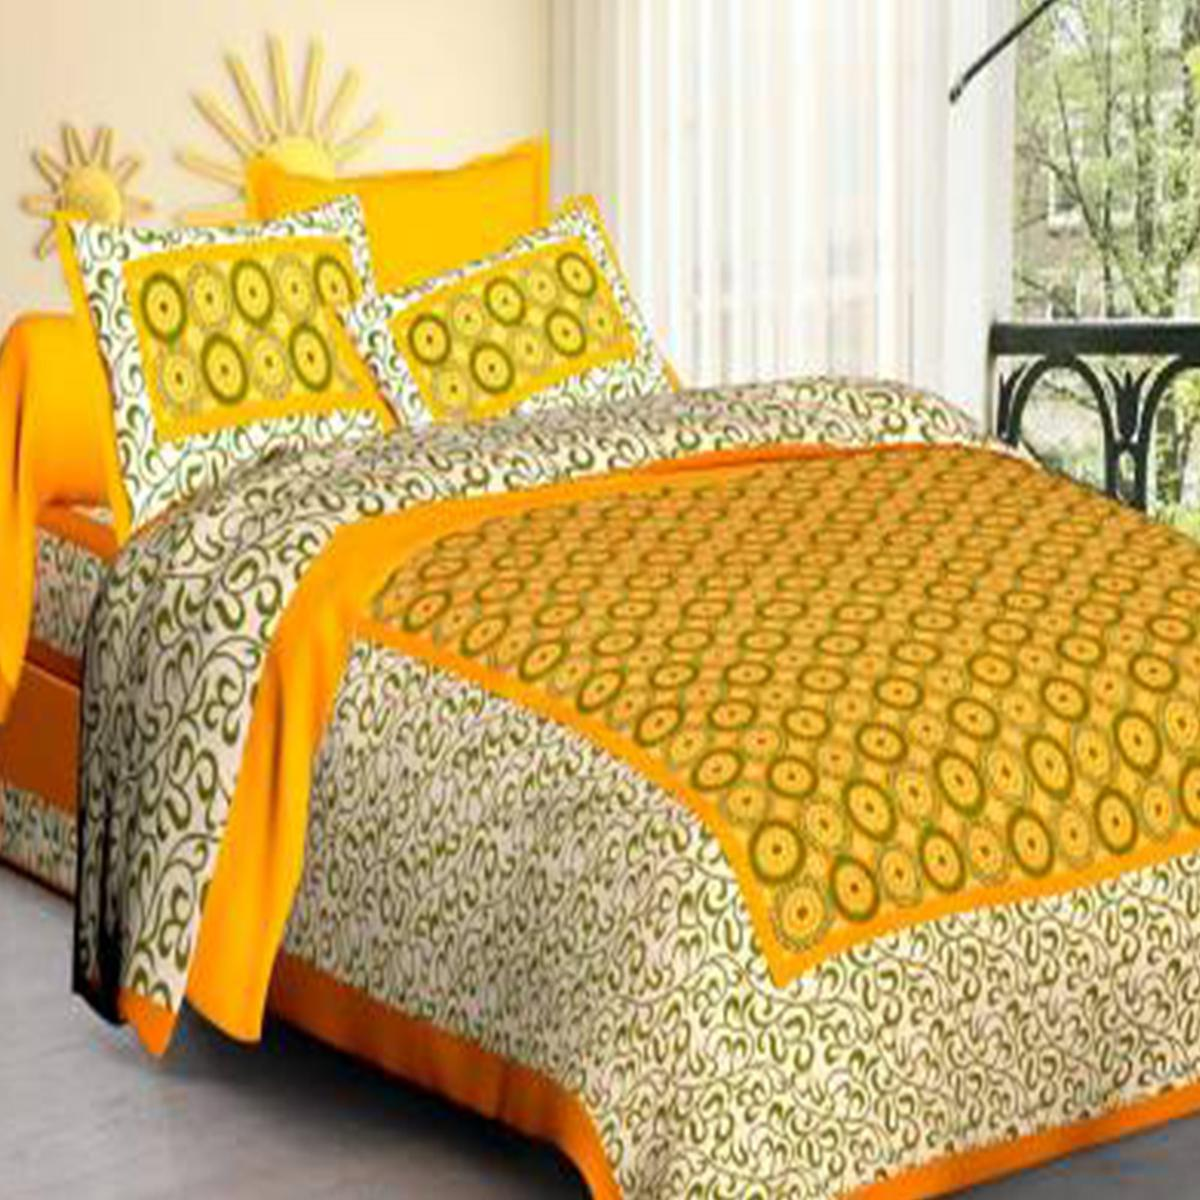 Delightful Yellow Colored Polka Dot Screen Print Cotton Bedsheet With Pillow Cover